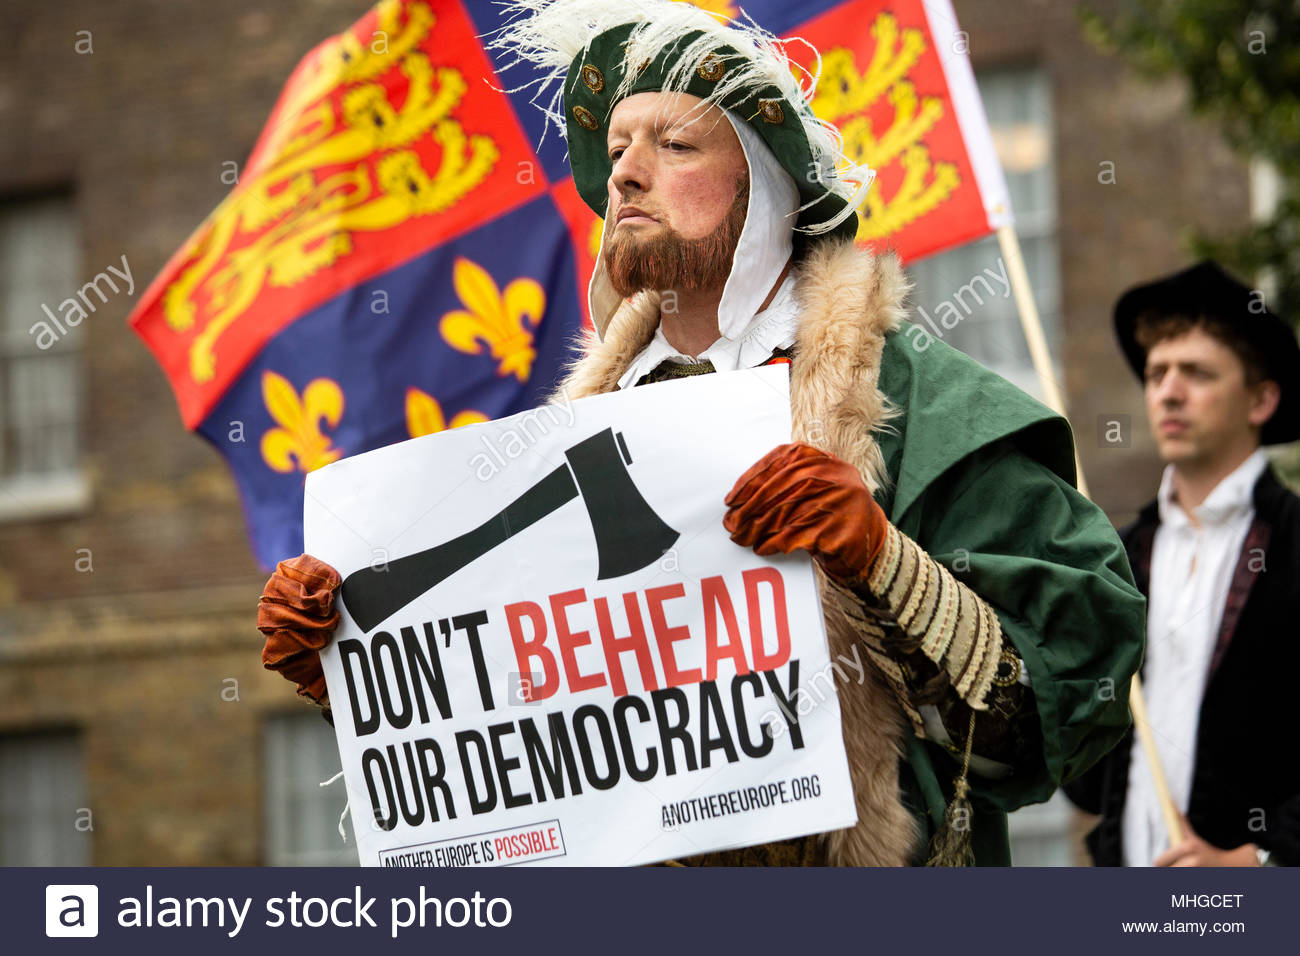 A protest by actors against the Tory government's attitude to the Brexit talks with the EU at Westminster today. Credit: reallifephotos/Alamy - Stock Image